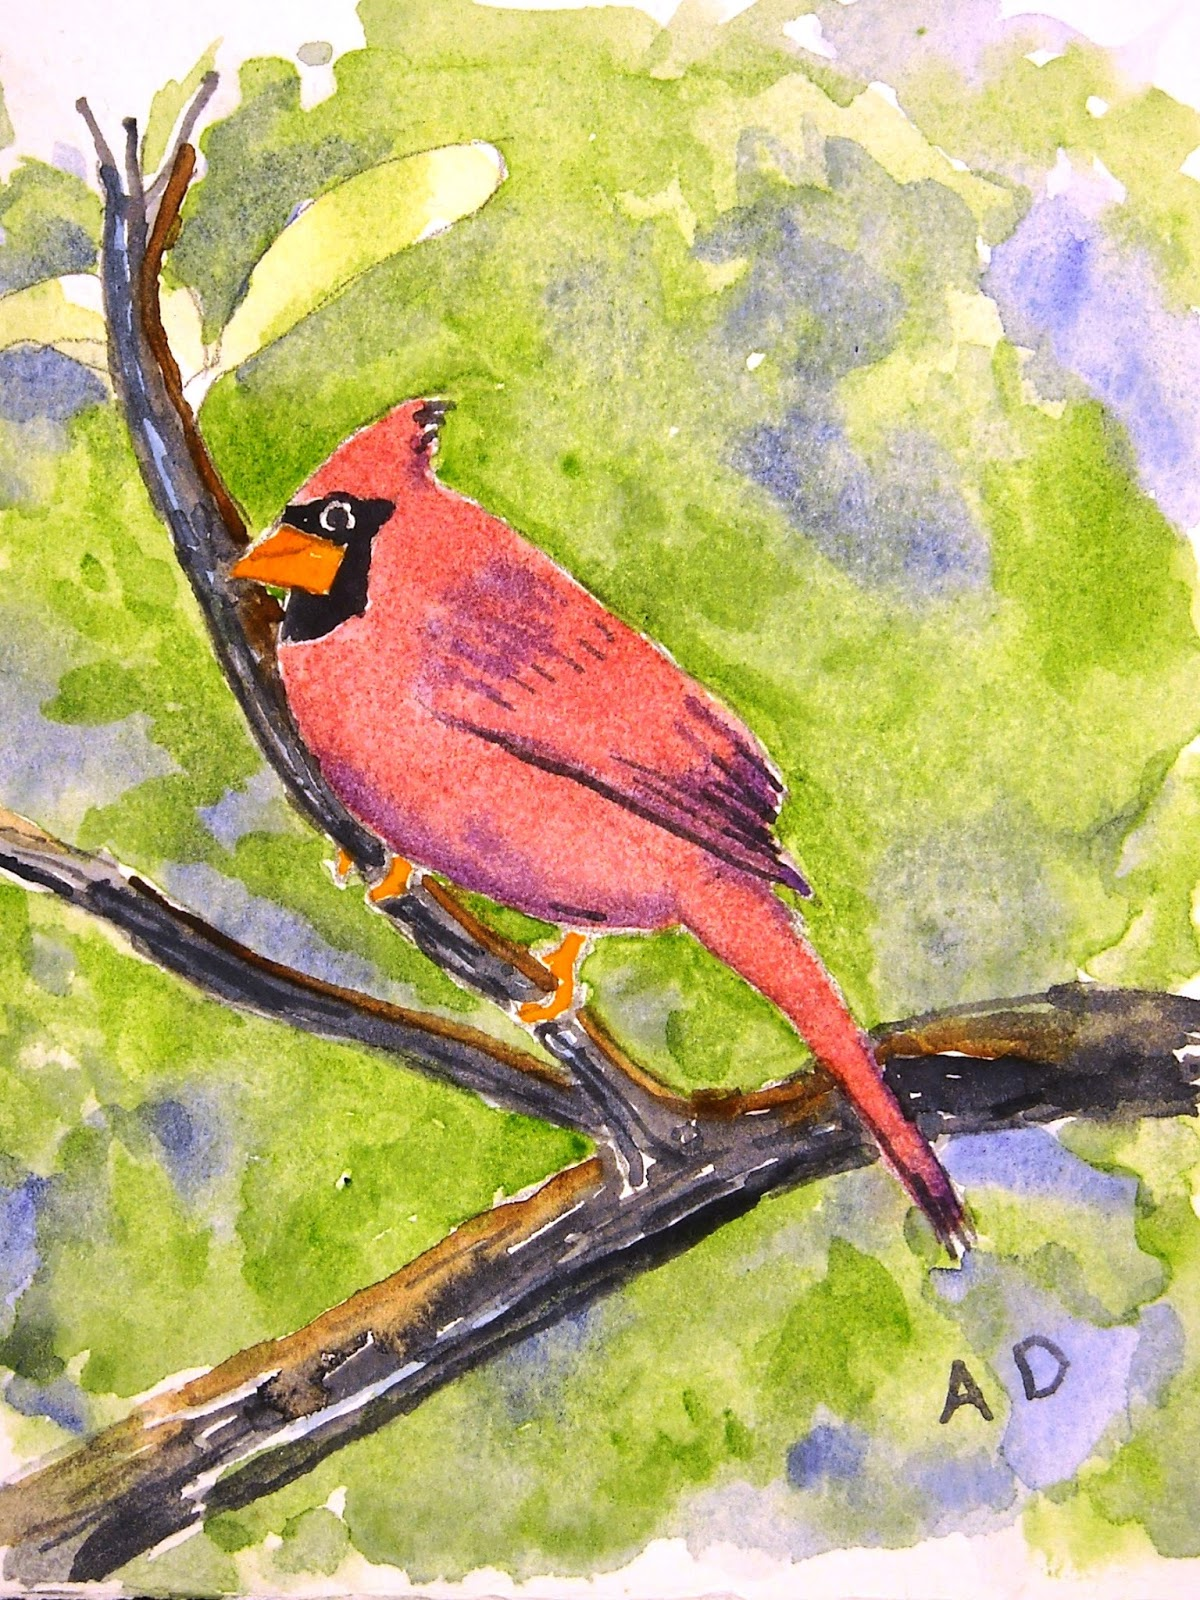 Artist Adron Watercolor Of Cardinal Bird On A Branch